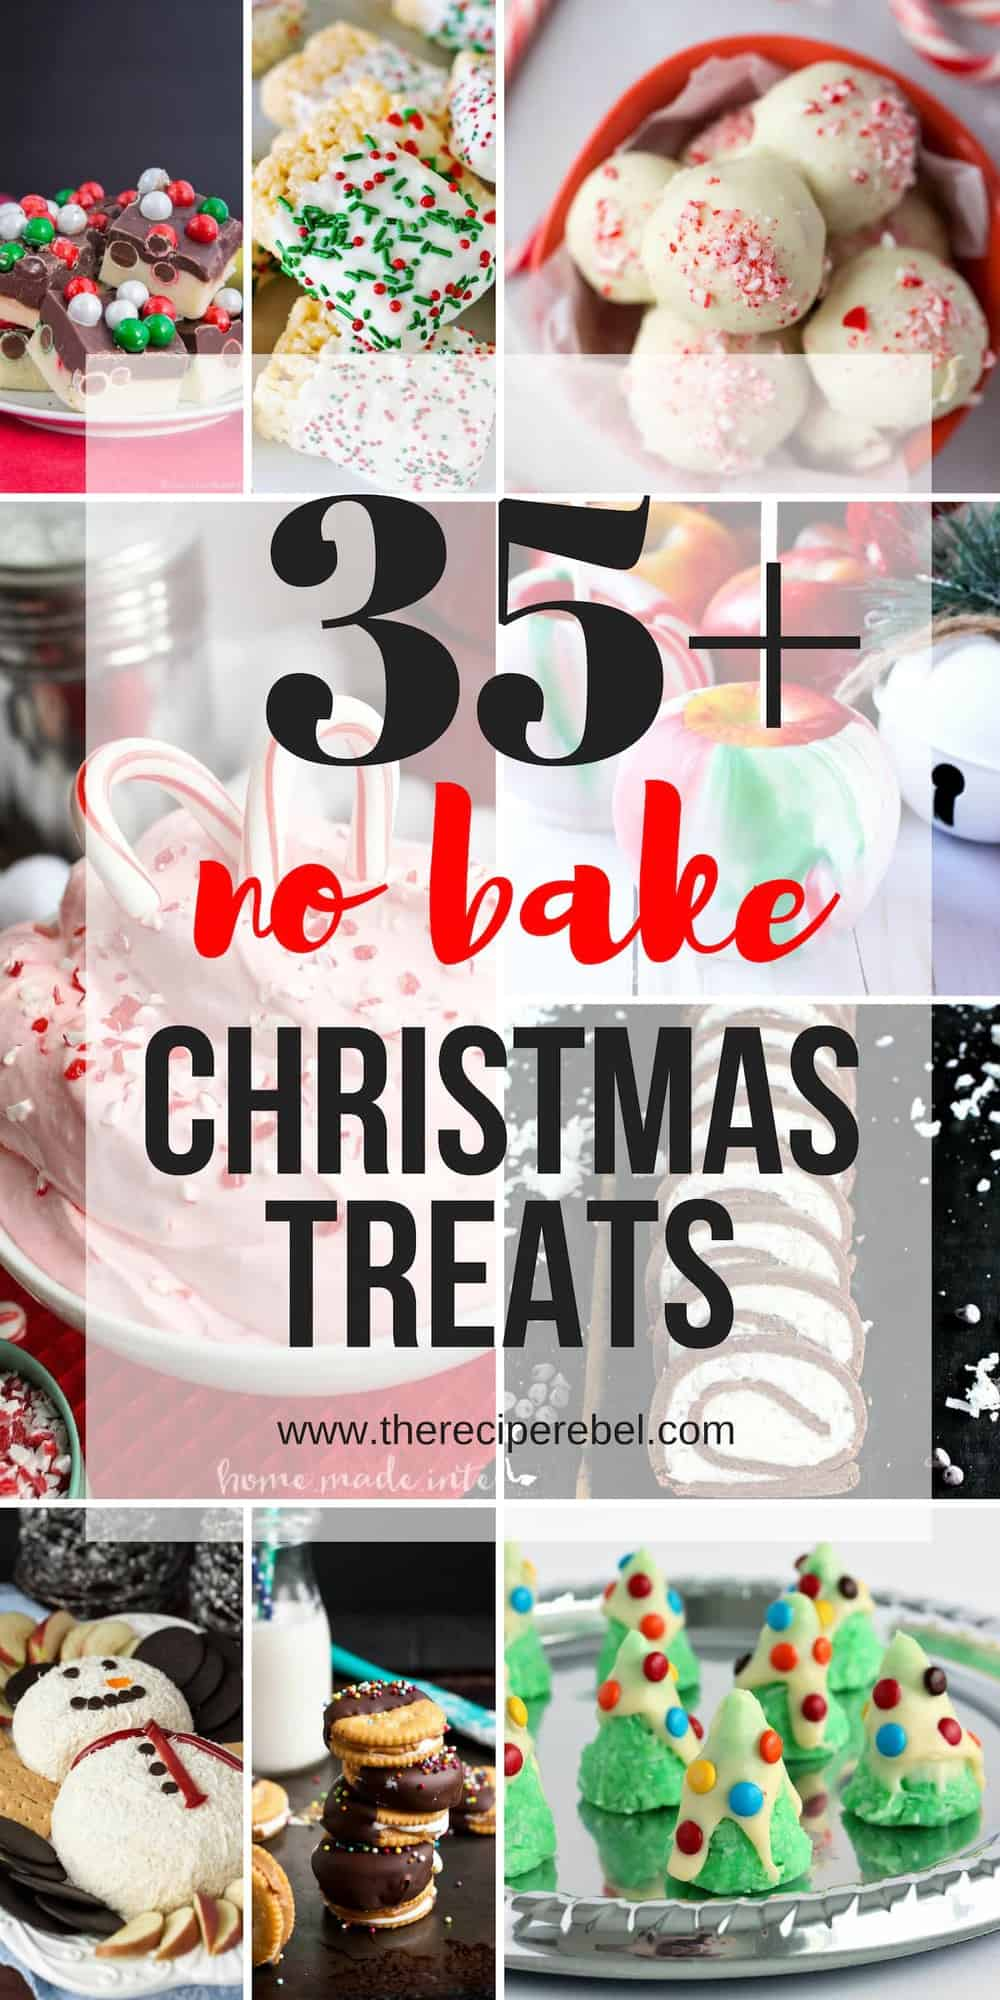 no bake easy christmas treats collage with multiple images and text